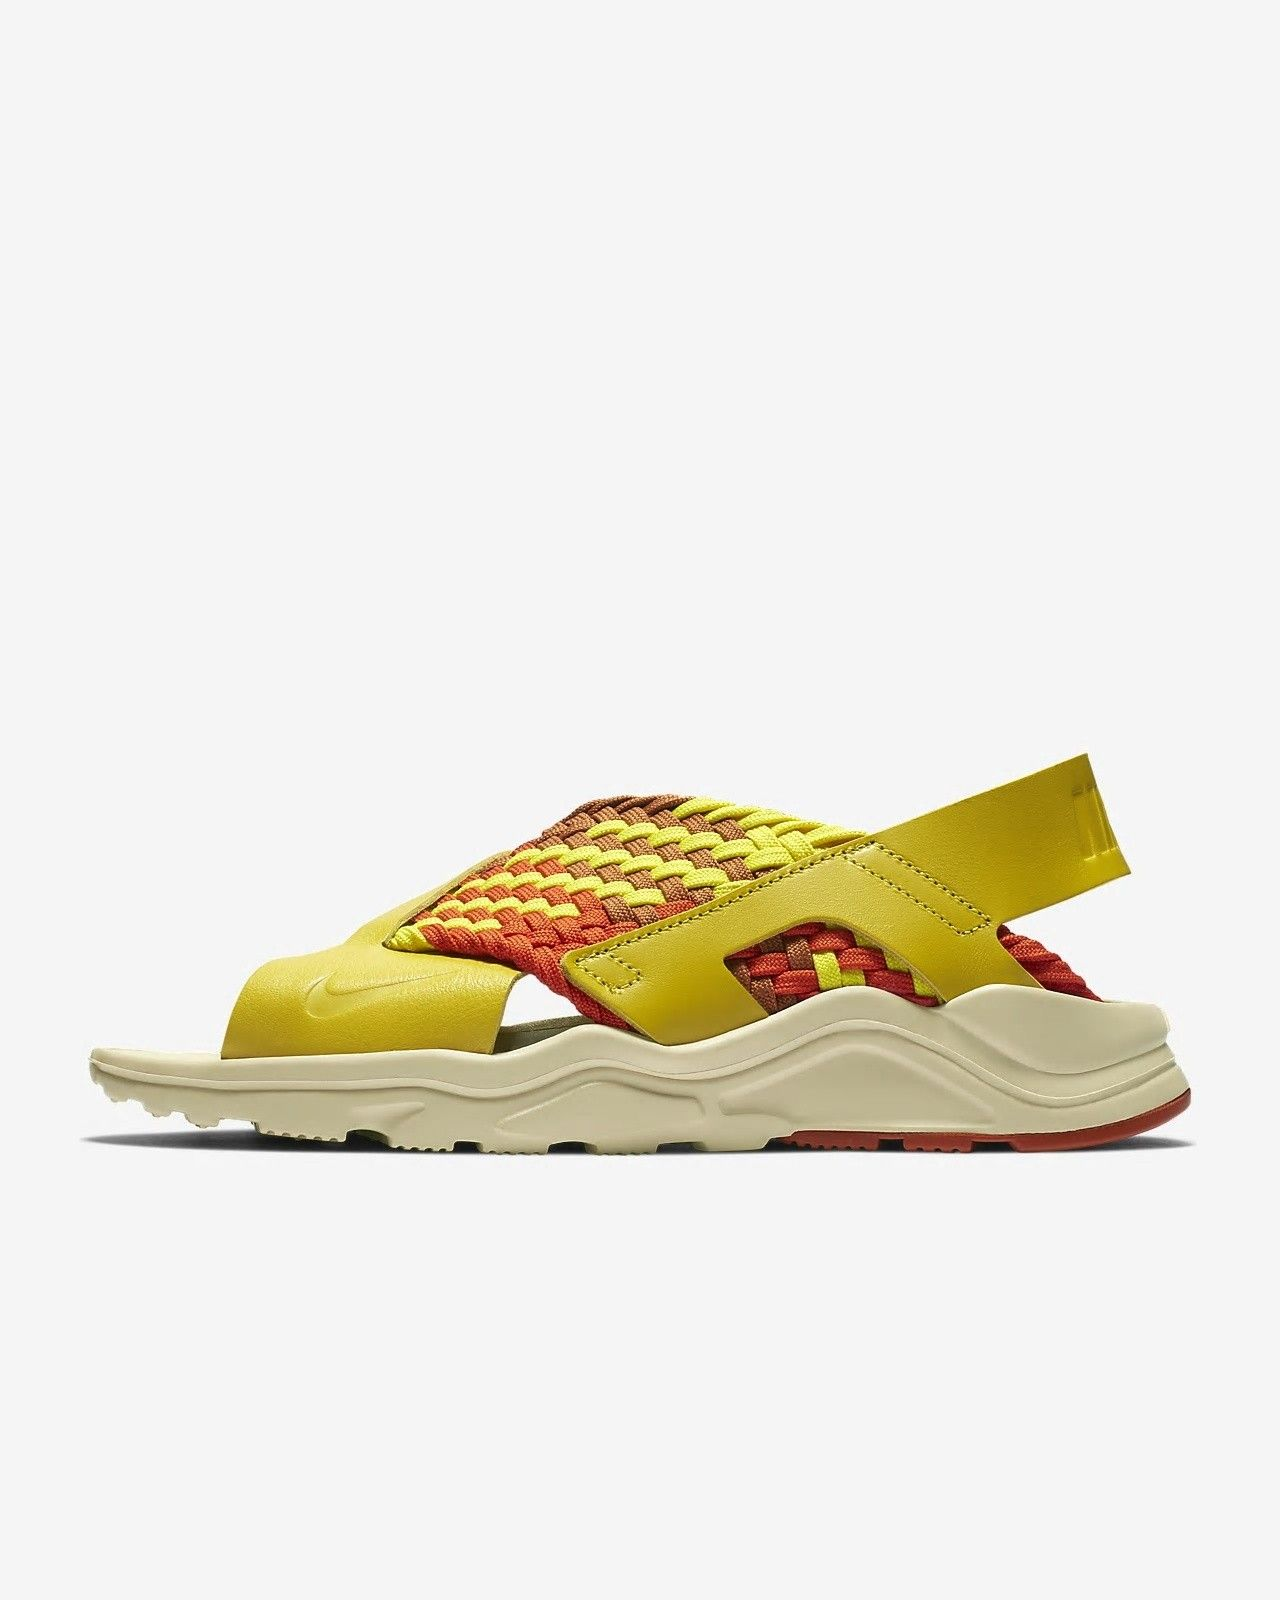 size 40 9ac9f 89fa1 Nike Air Huarache Ultra Bright Citron Campfire Orange Camper Green Monarch  Women  nike  nikeshoes  nikewomen  womenshoes